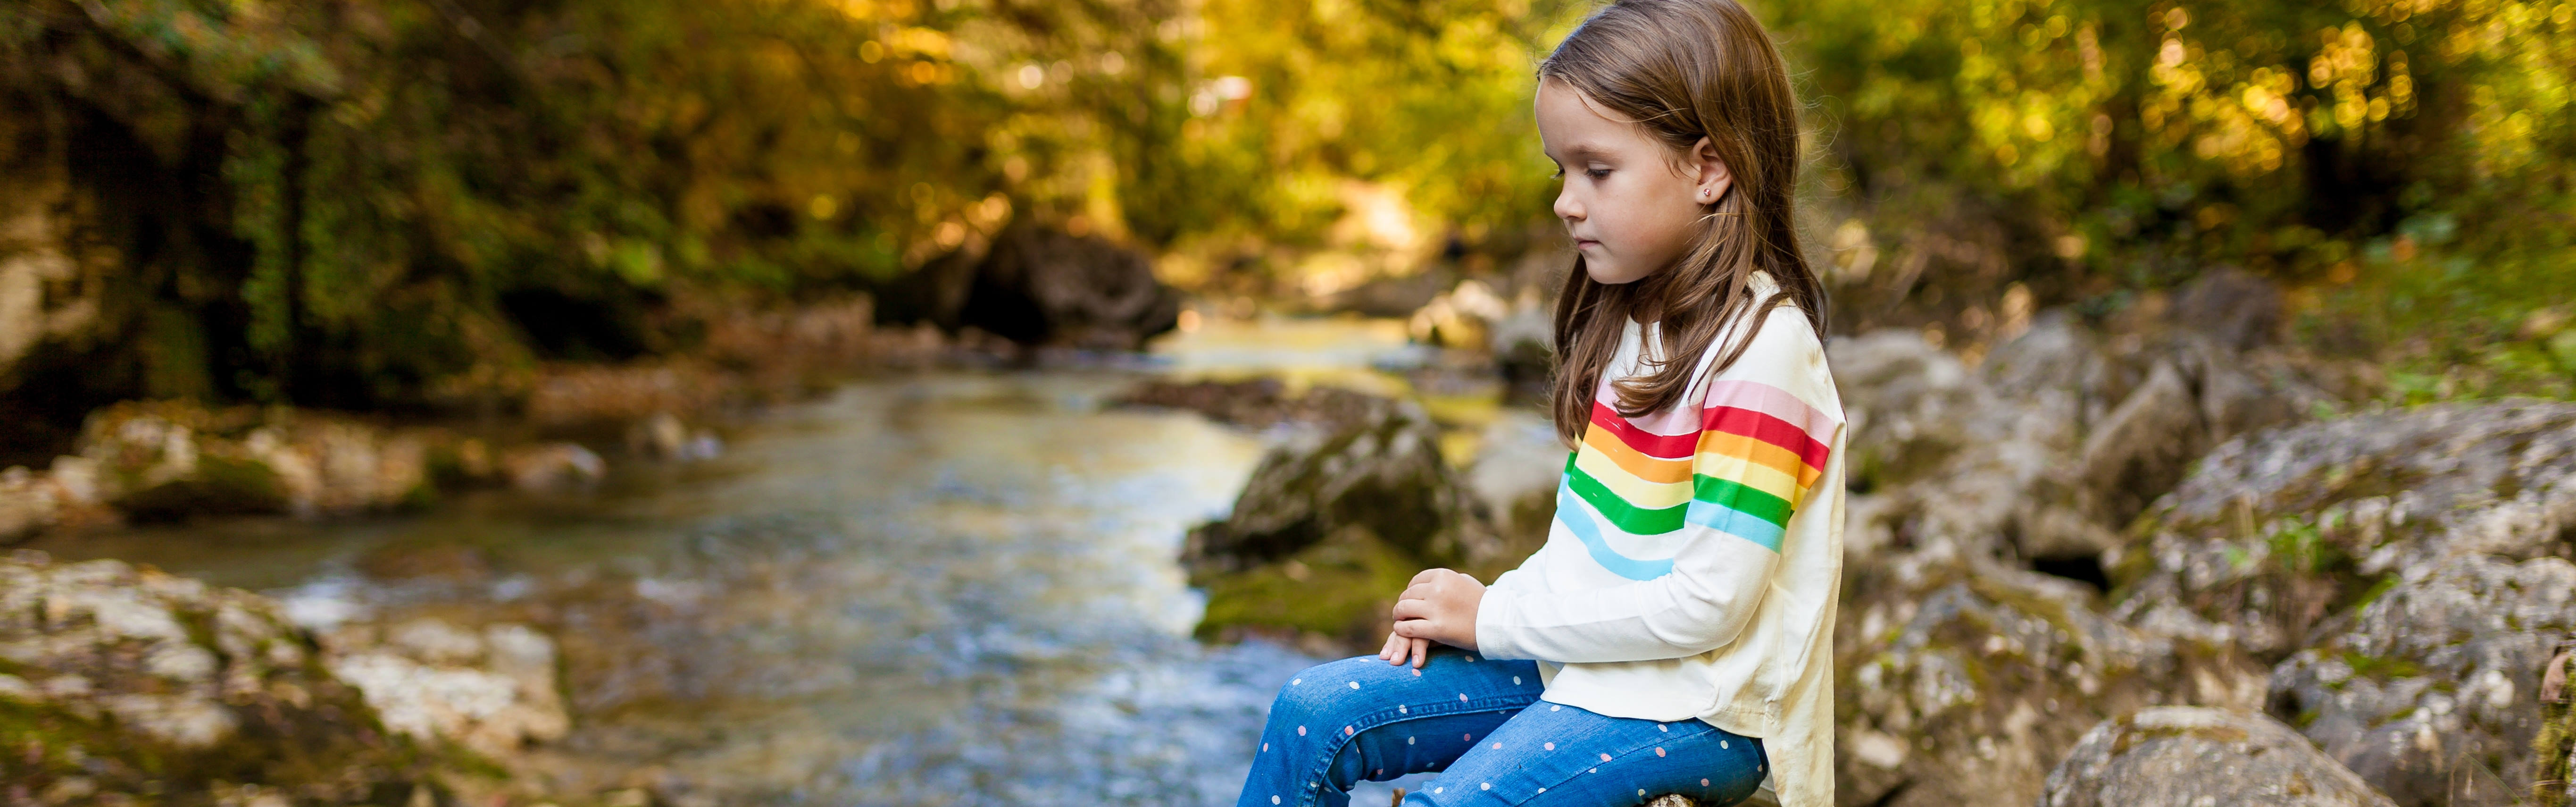 Girl by Stream in Fall